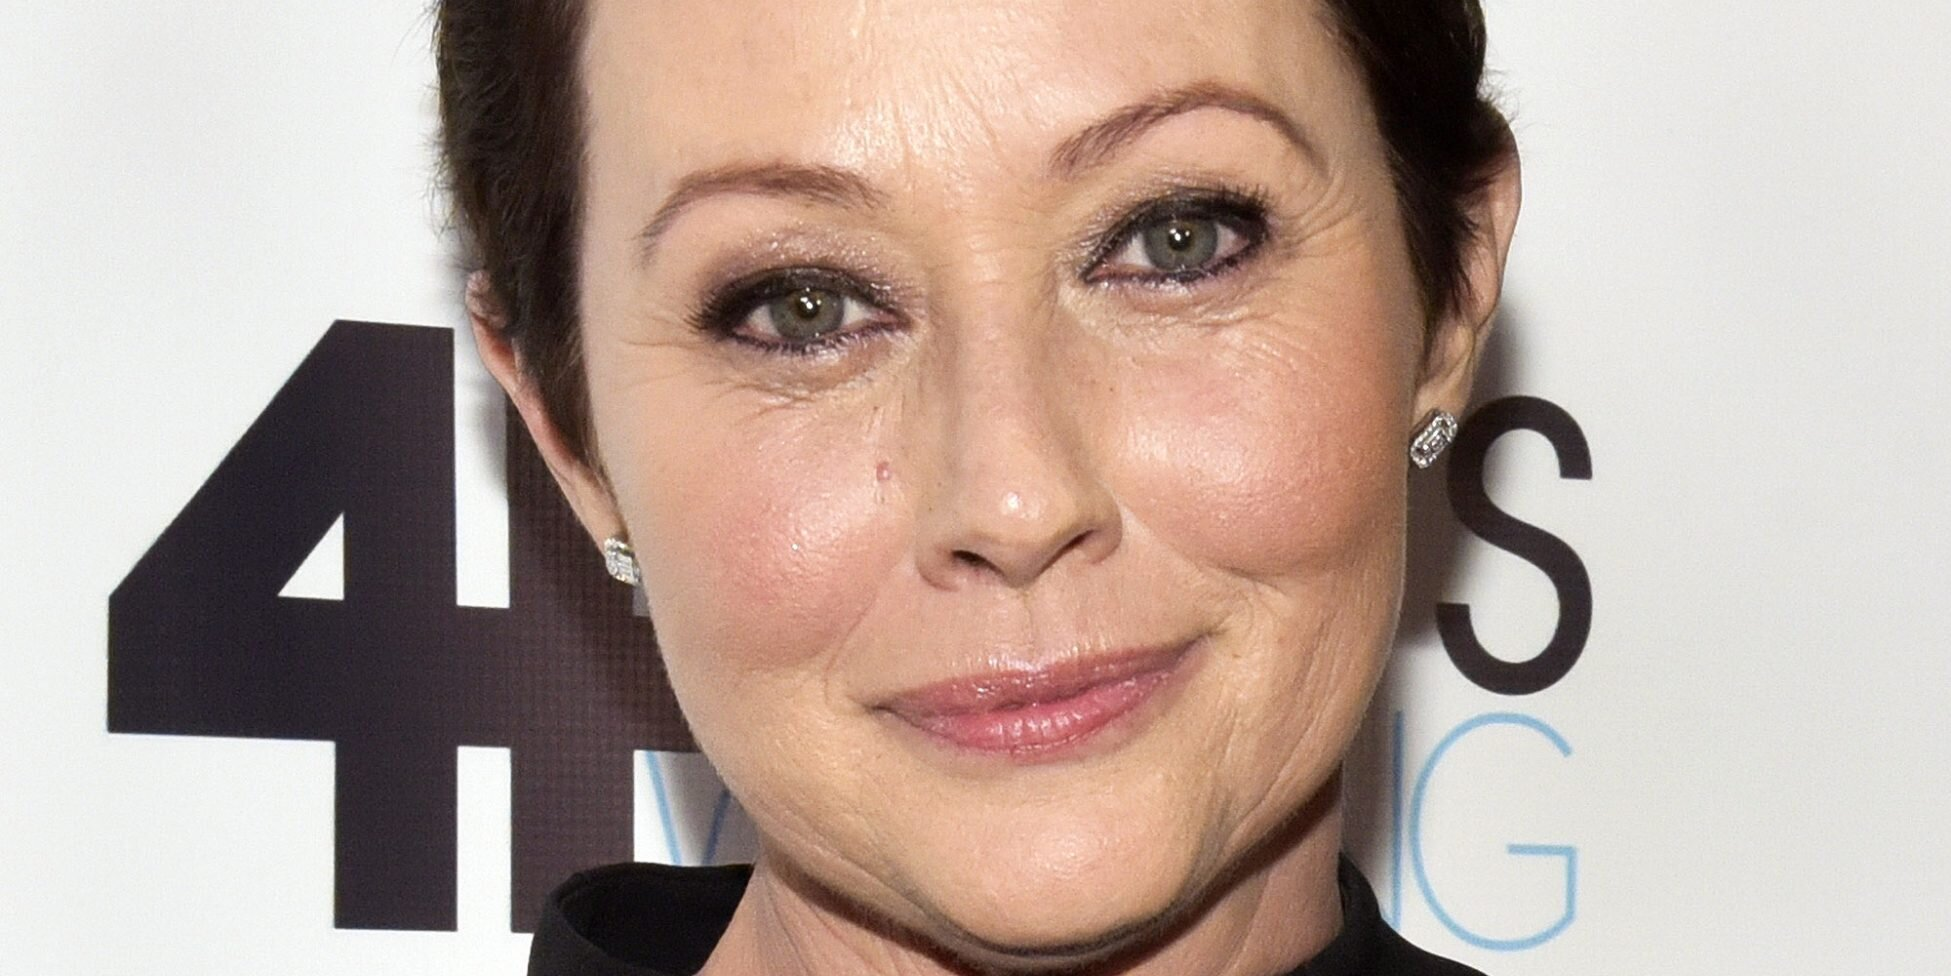 Shannen Doherty To Undergo Surgery a Year After Announcing Breast Cancer Remission